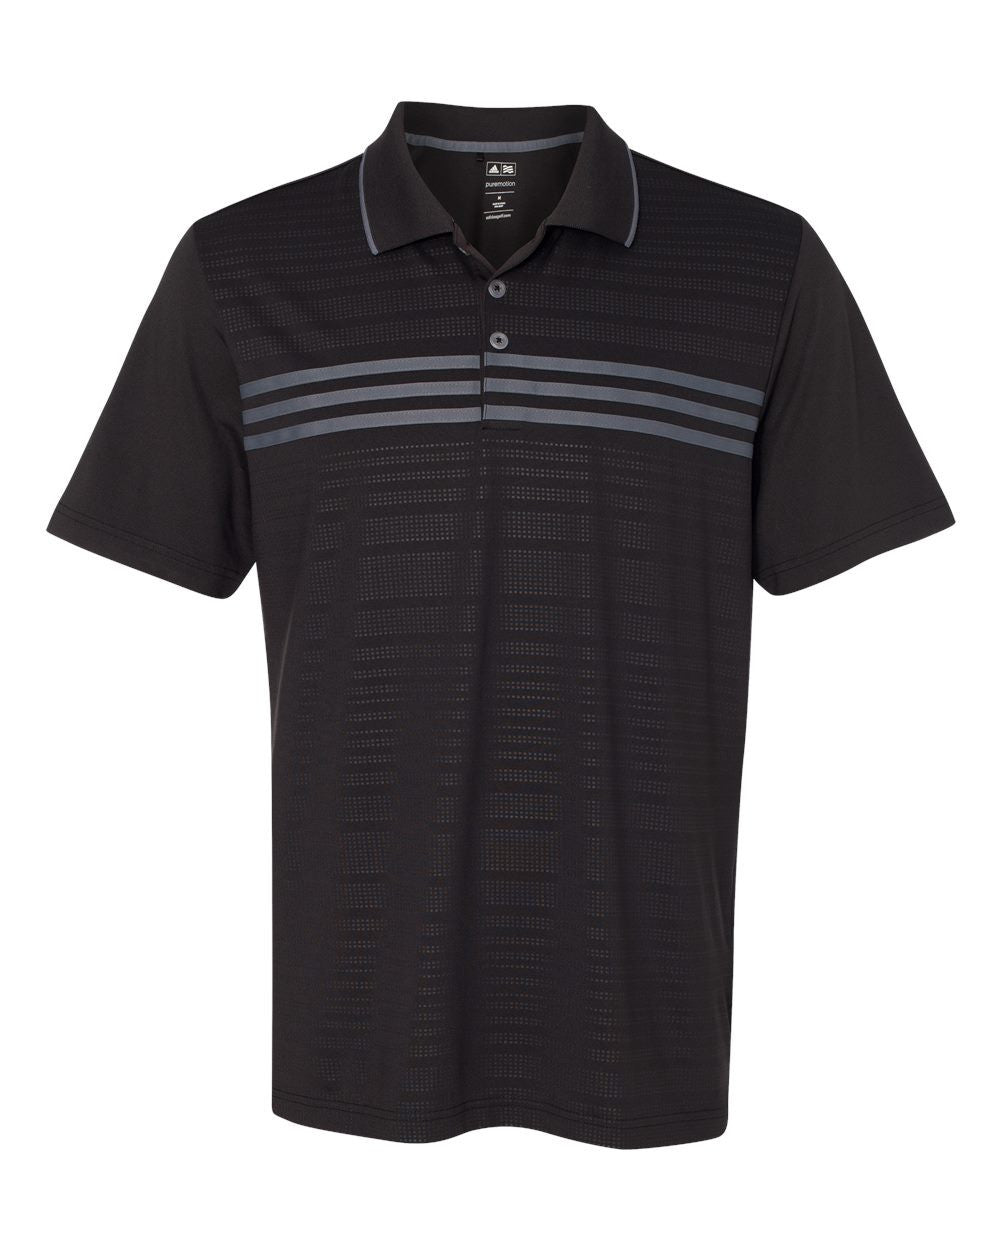 Golf Performance Chest Stripe Polos by Adidas